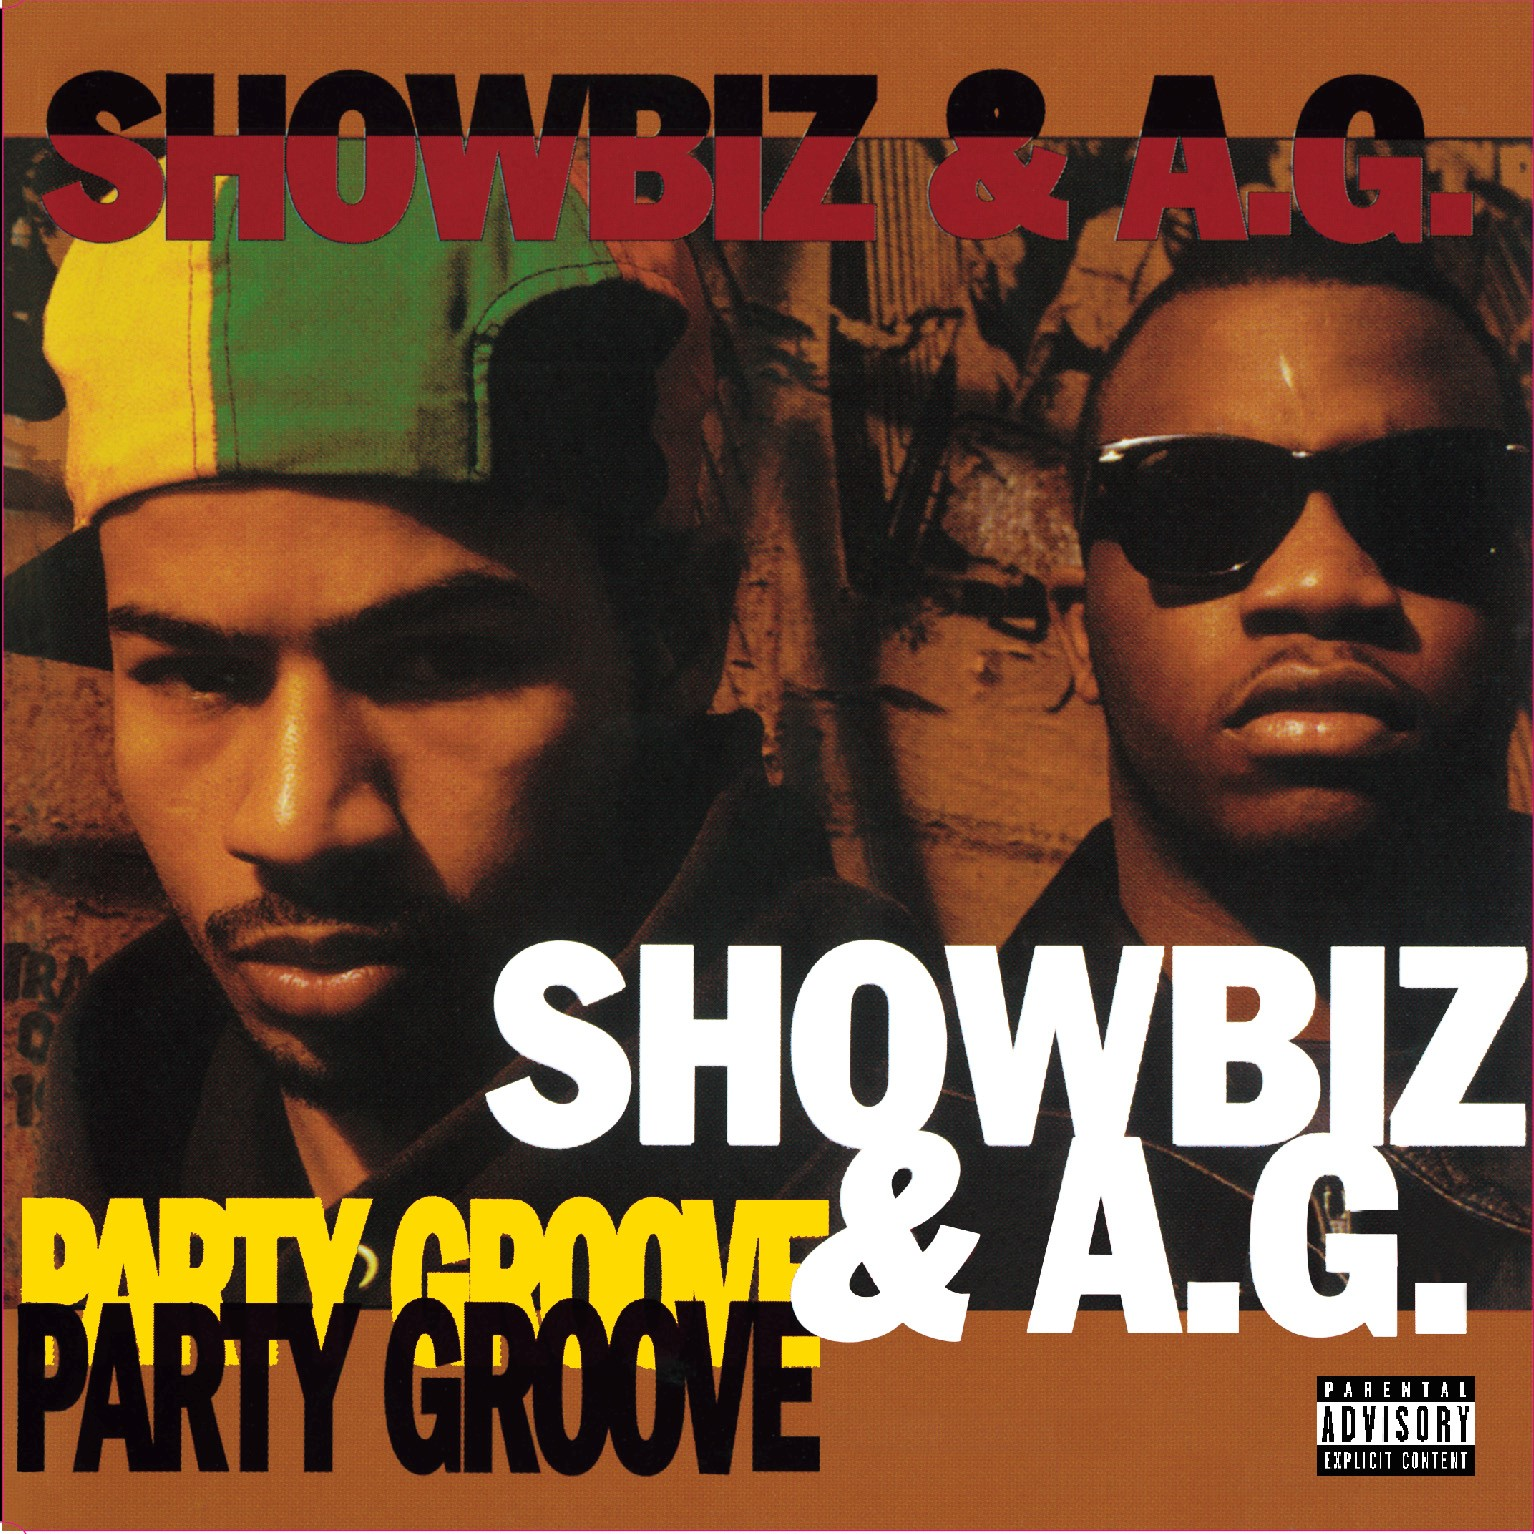 034_Showbiz & A.G.Party Groove(instrumental) / Party Groove(bass mix)